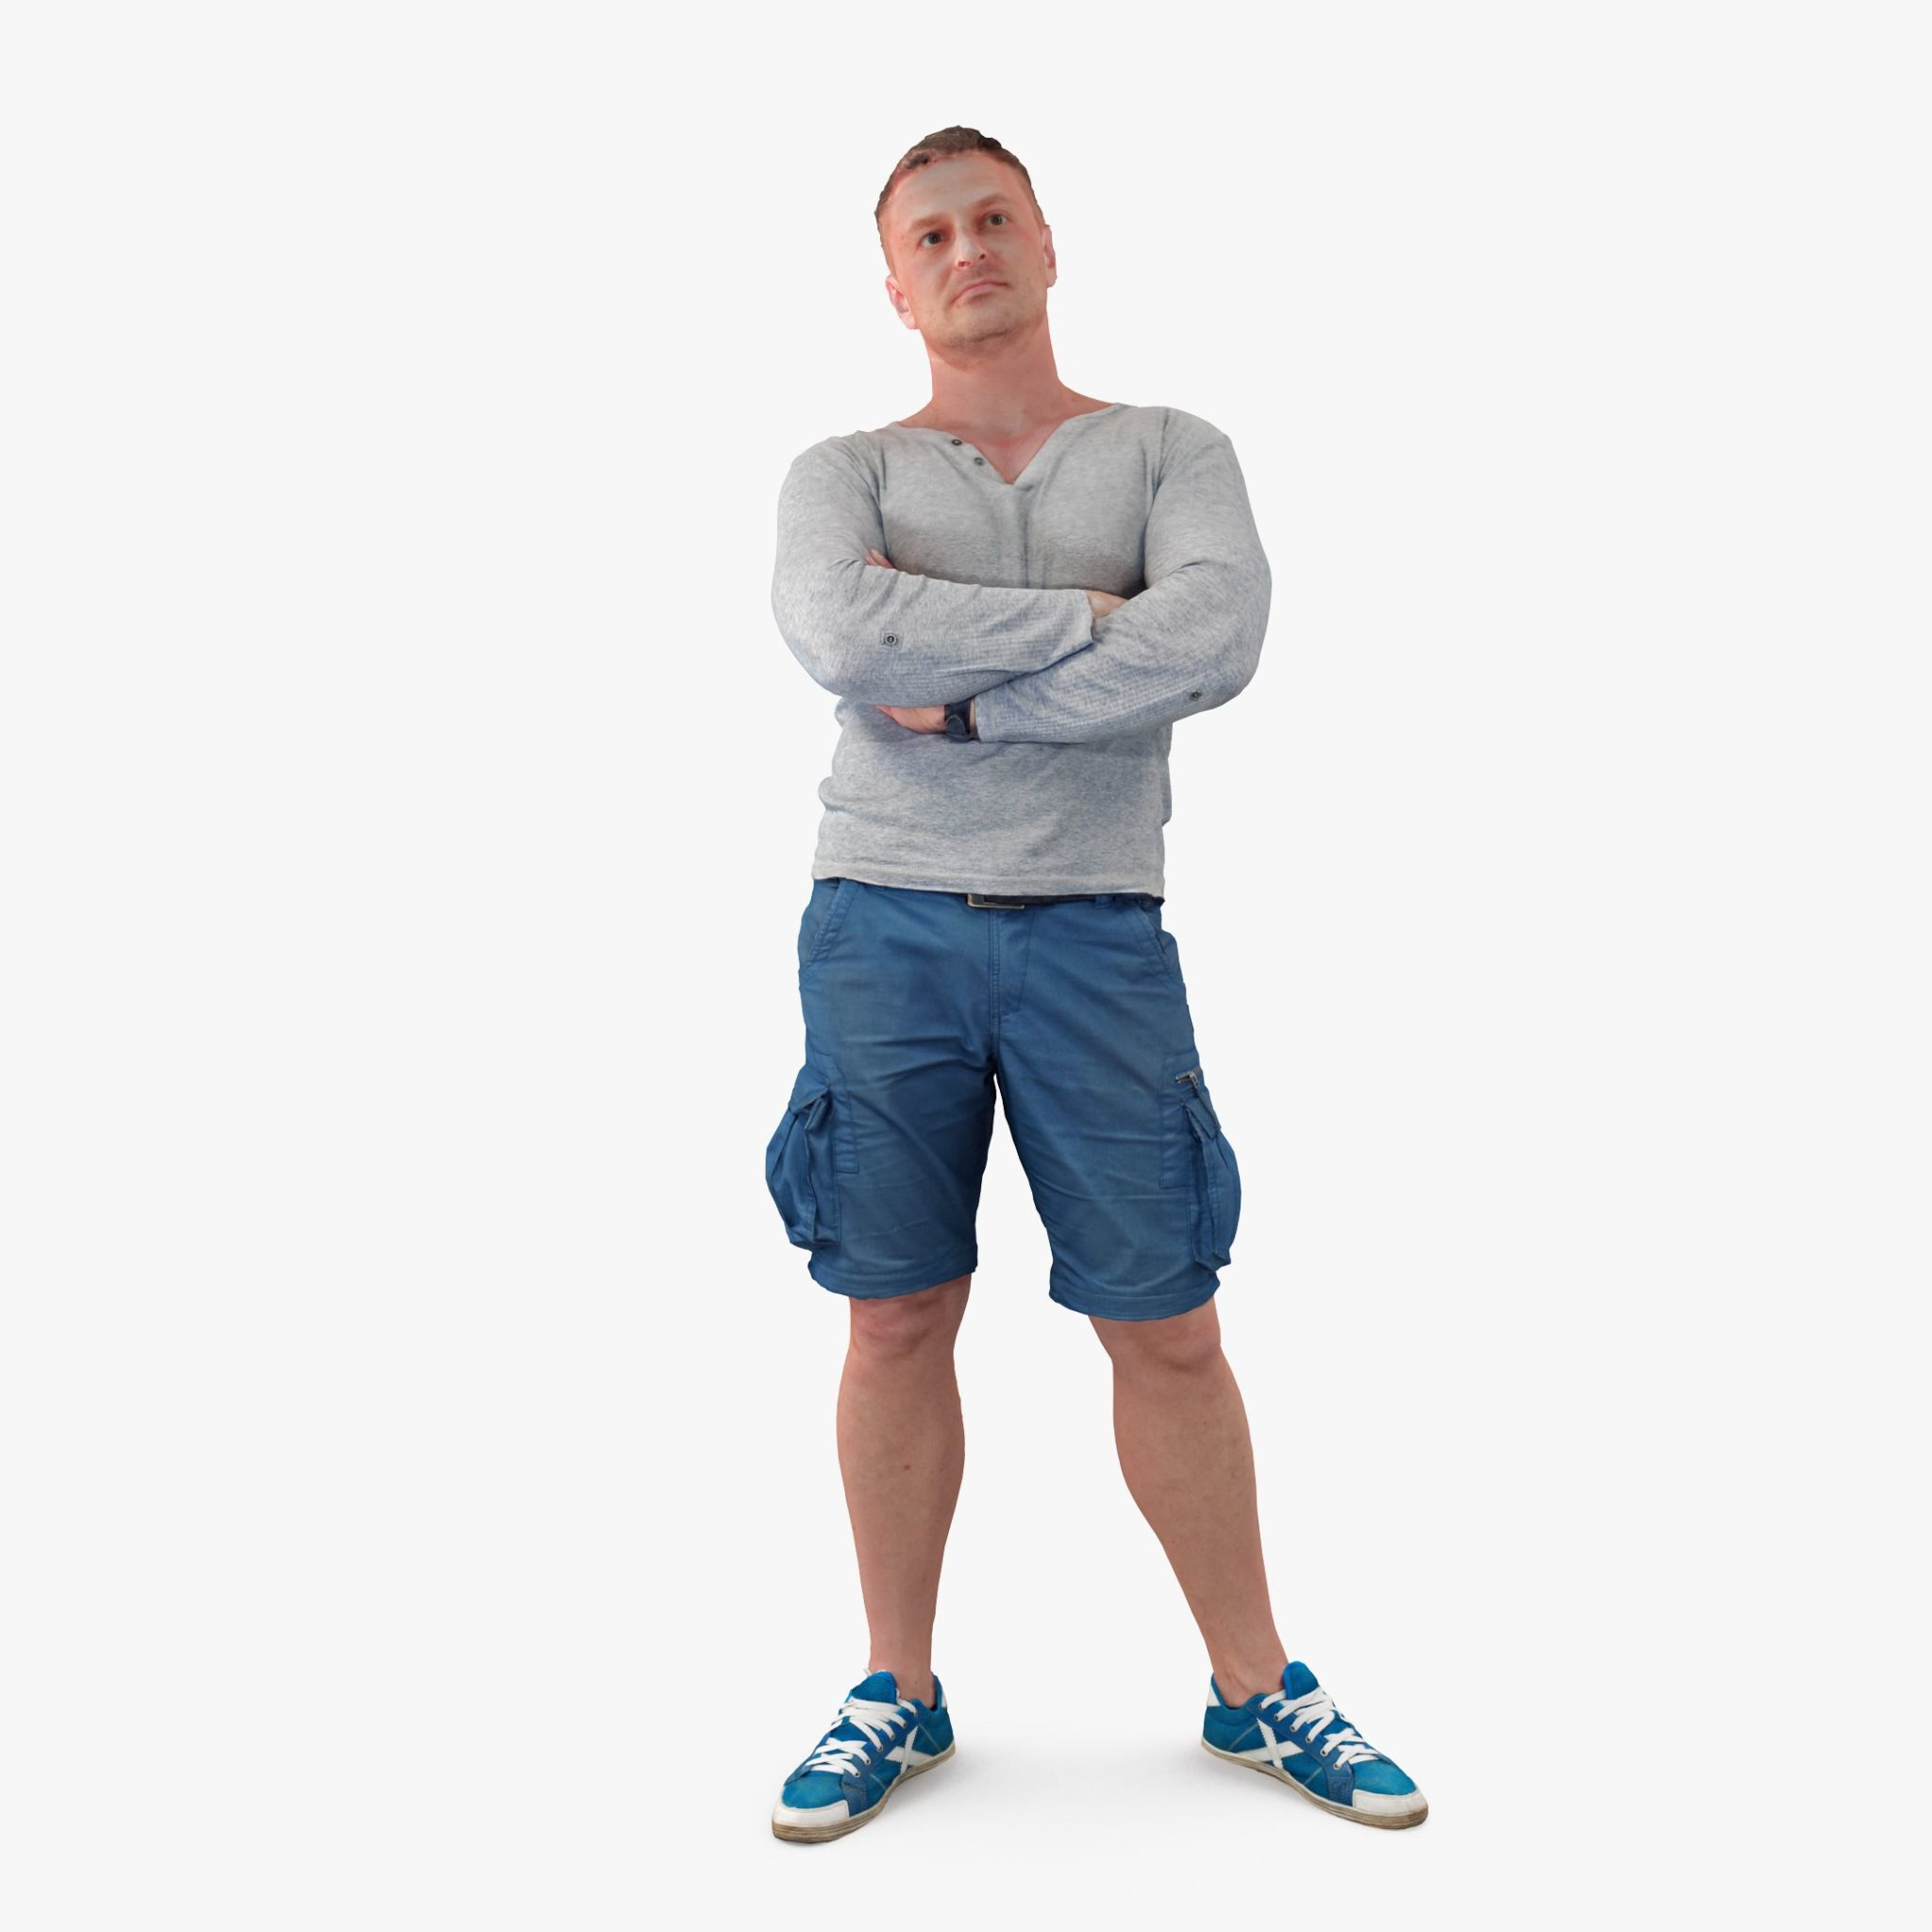 Casual Athletic Male 3D Model | 3DTree Scanning Studio